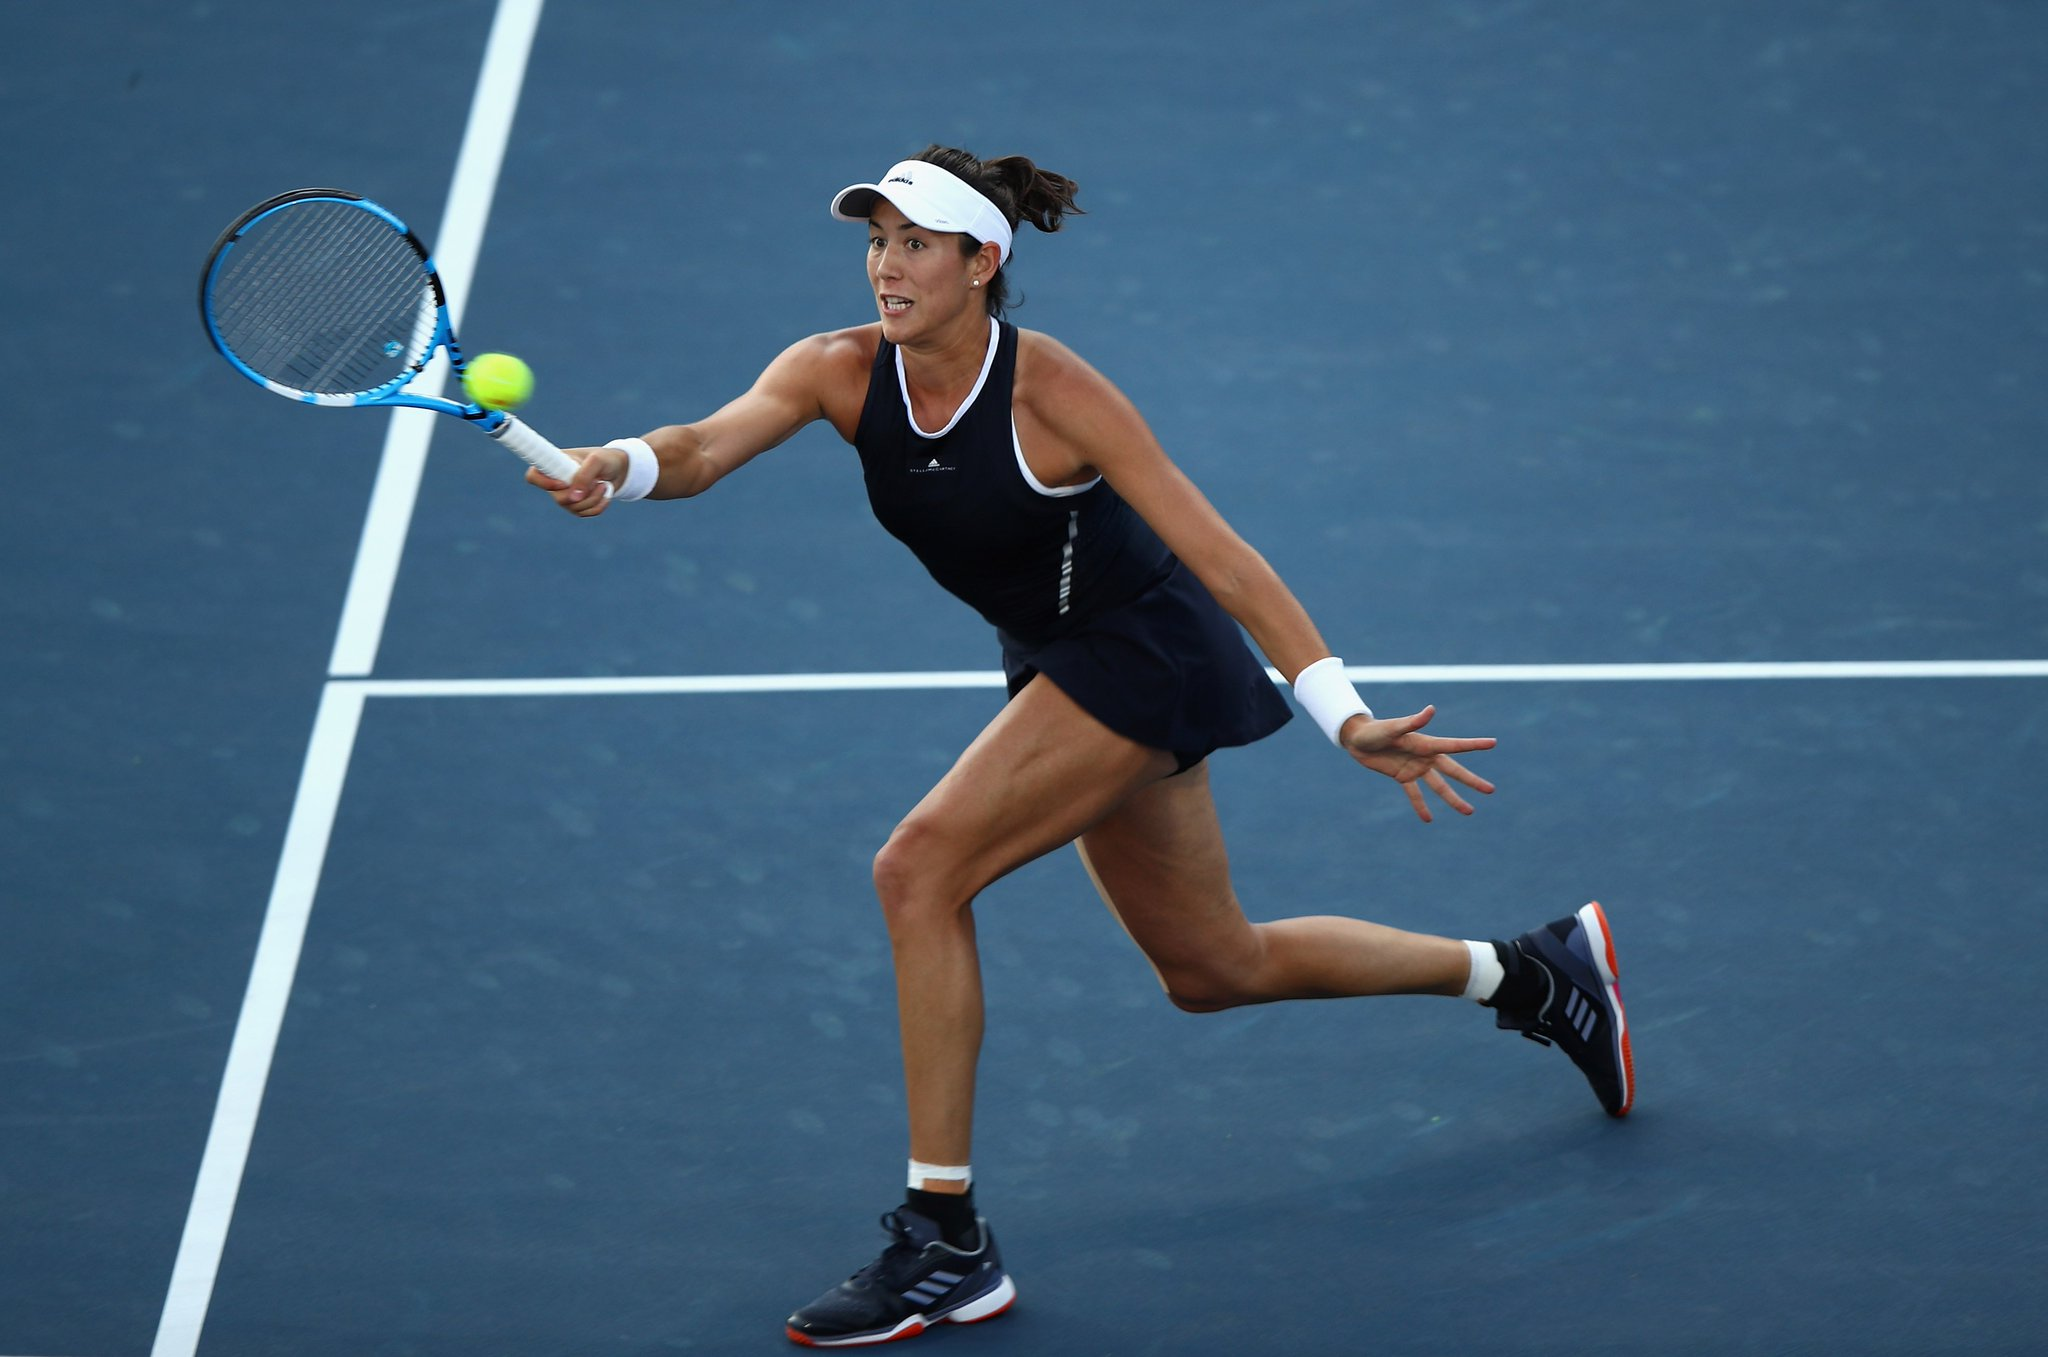 .@GarbiMuguruza drops only TWO games in #CincyTennis Second round!  HIGHLIGHTS--> https://t.co/vvbip8XoM1 https://t.co/Q2VLGL4FhM